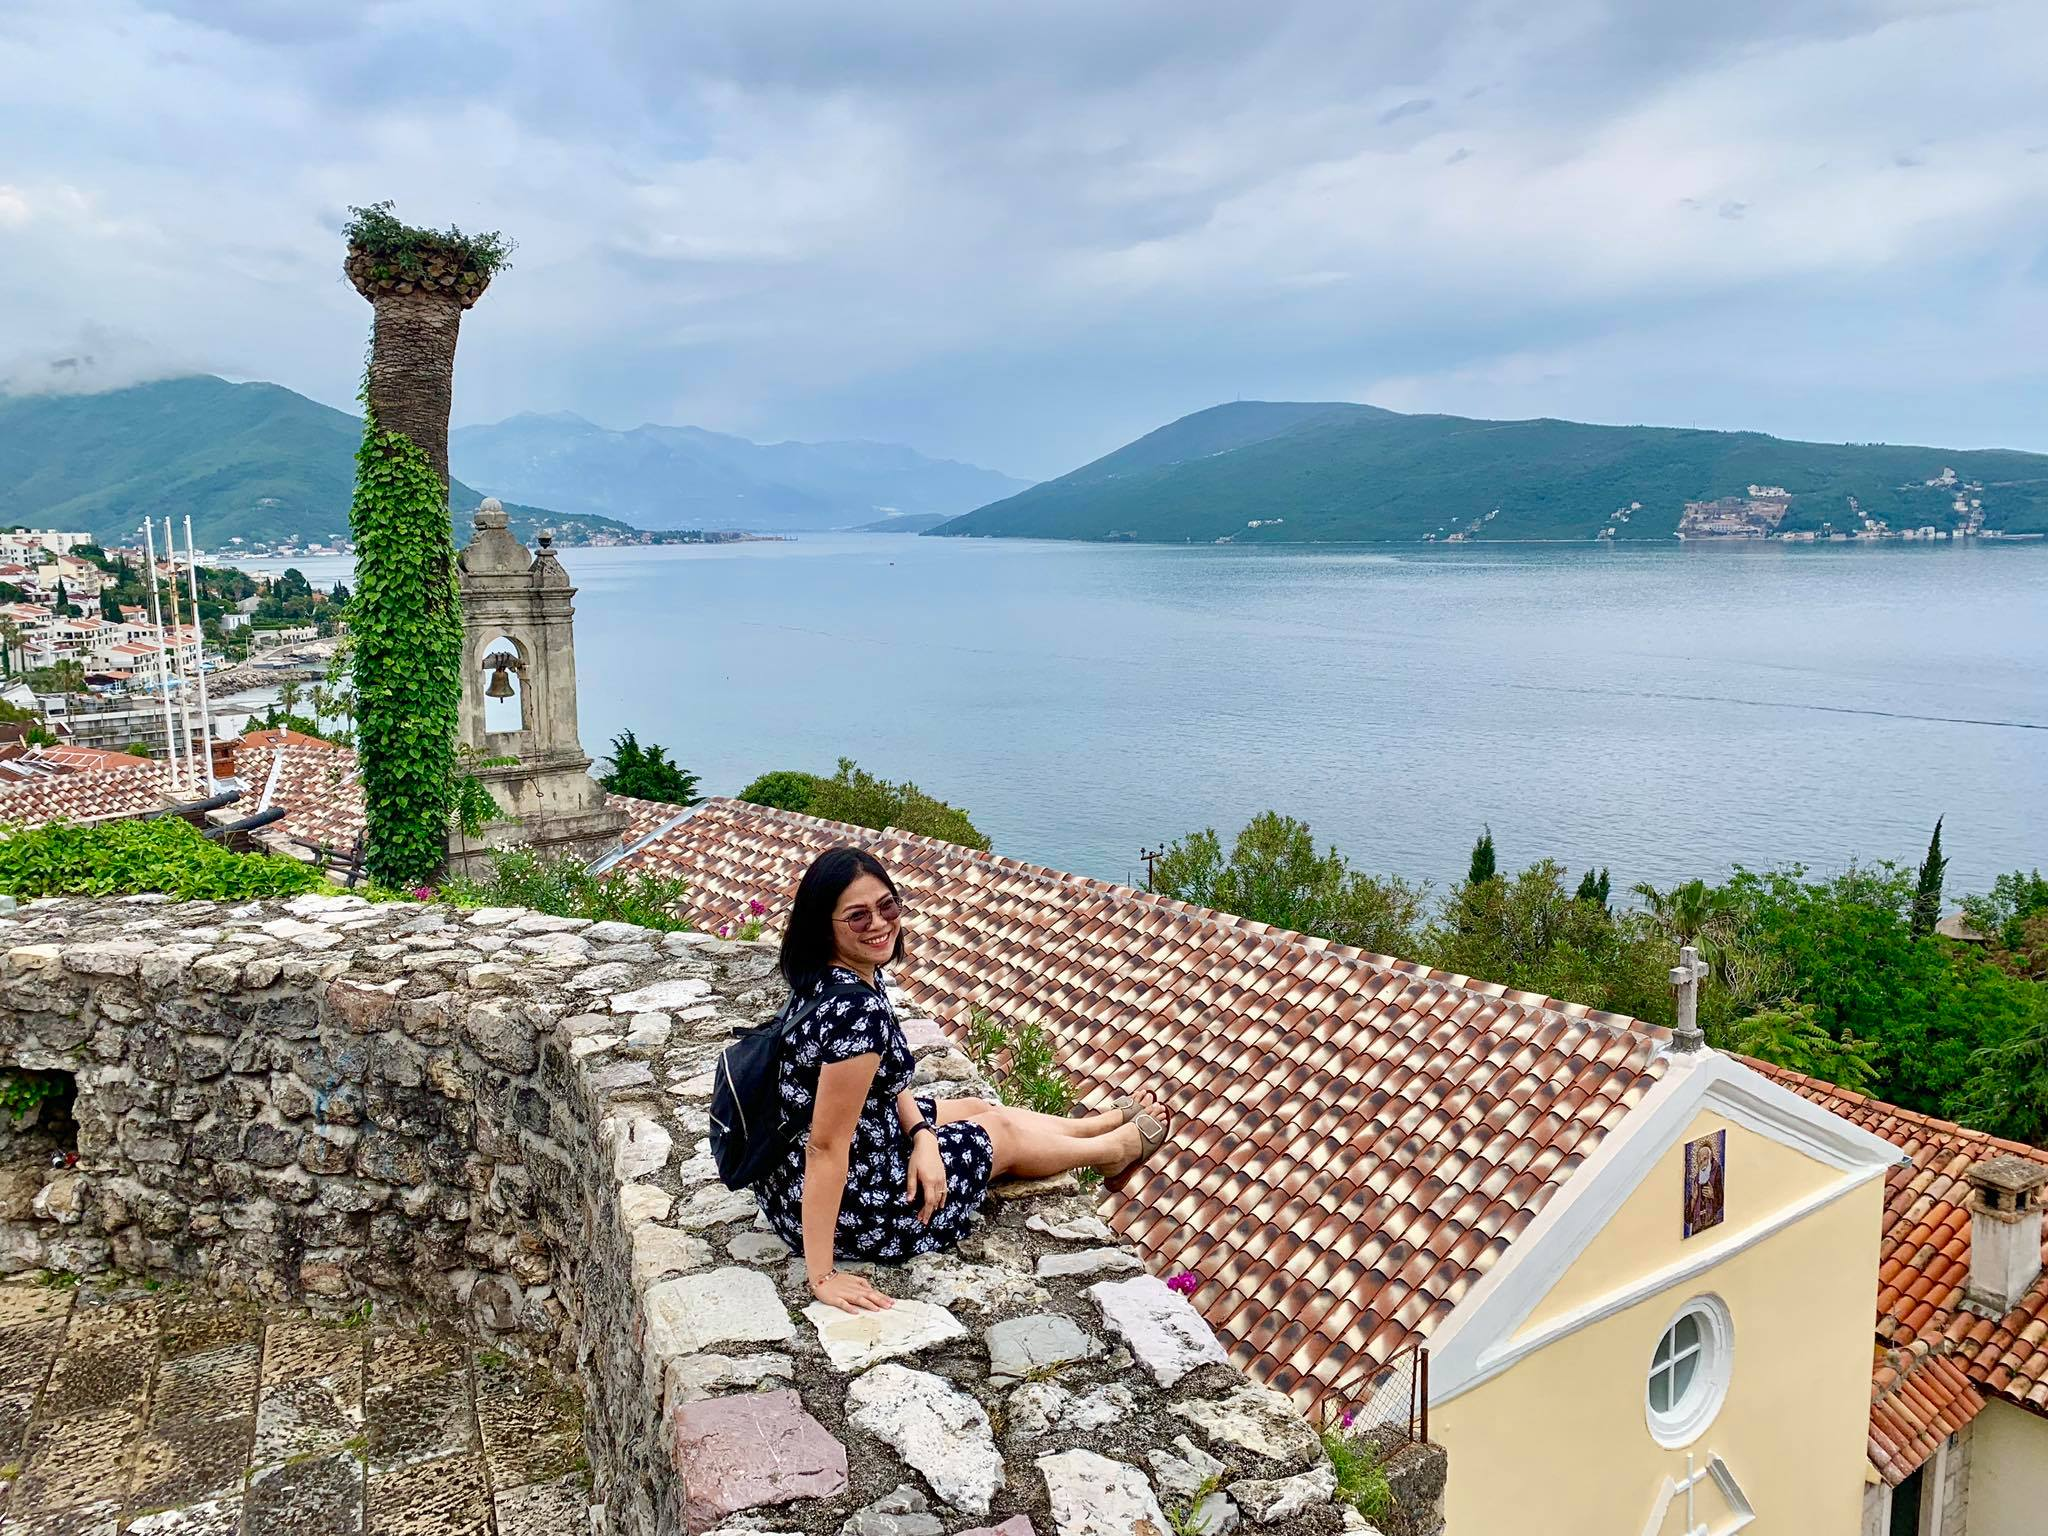 Expat Life in Montenegro Day 3 We have our first visitor already in our new home here in Herceg Novi.jpg